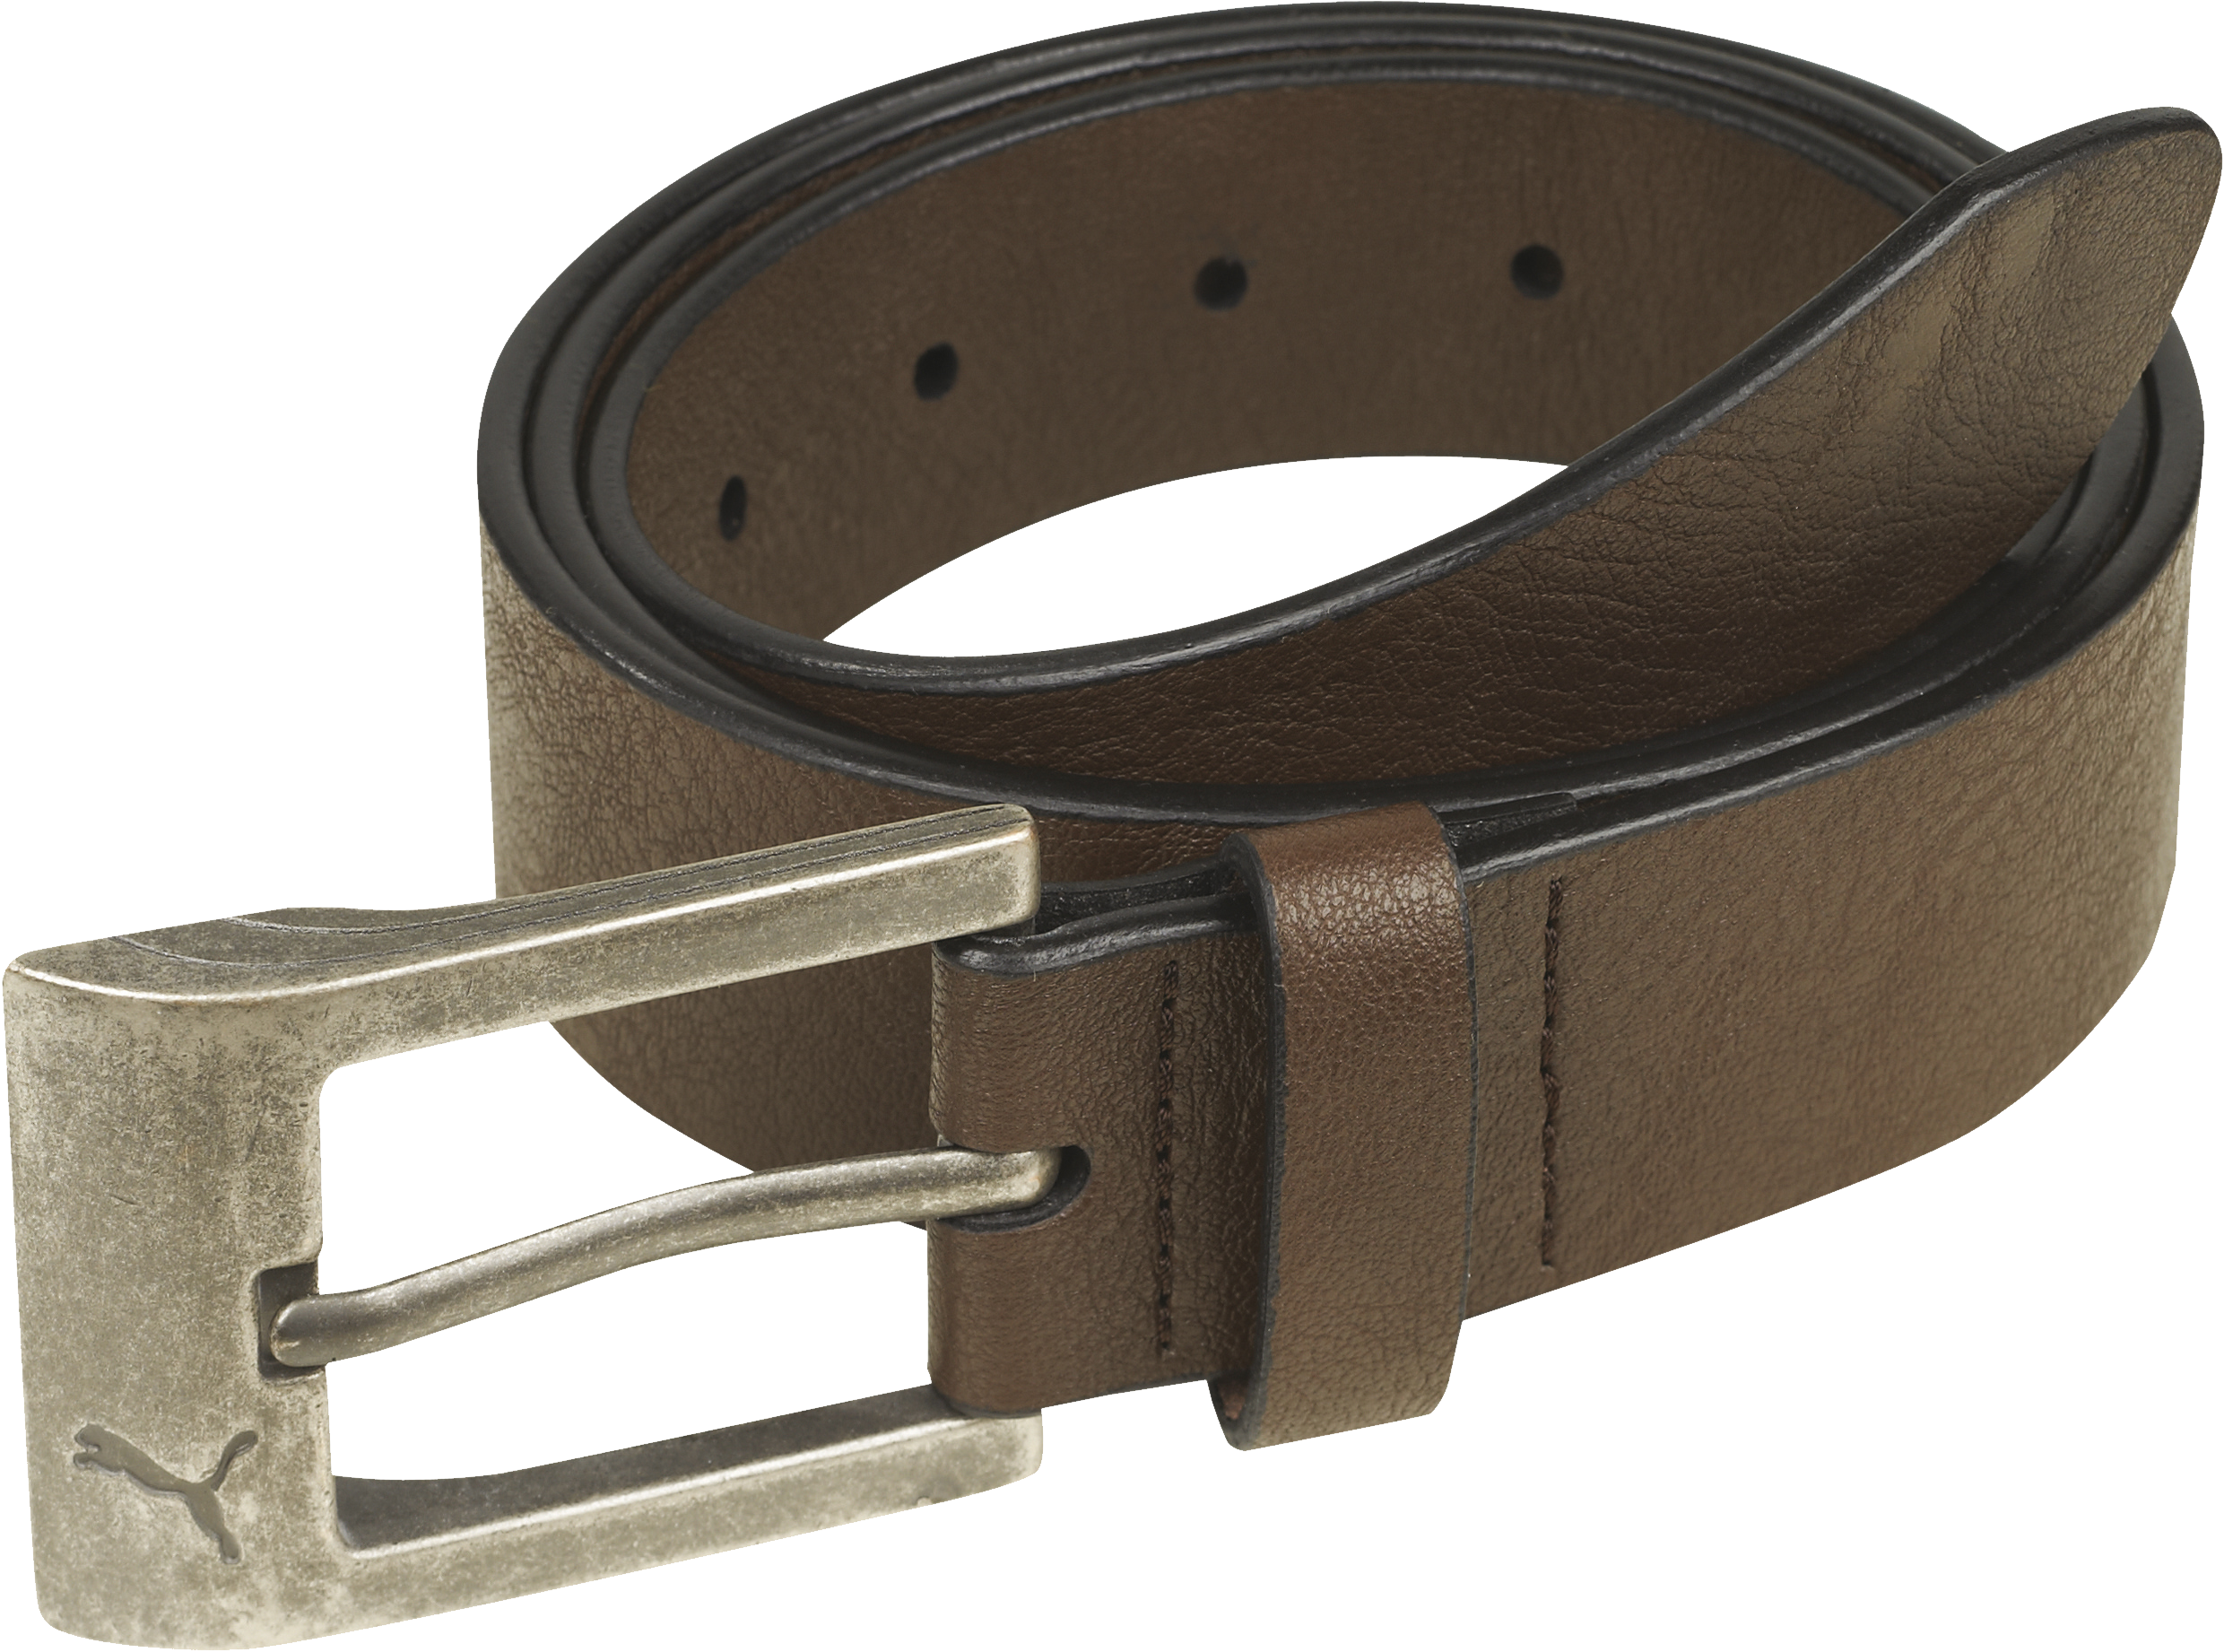 Free fashion belts cliparts. Transparent belt banner royalty free library